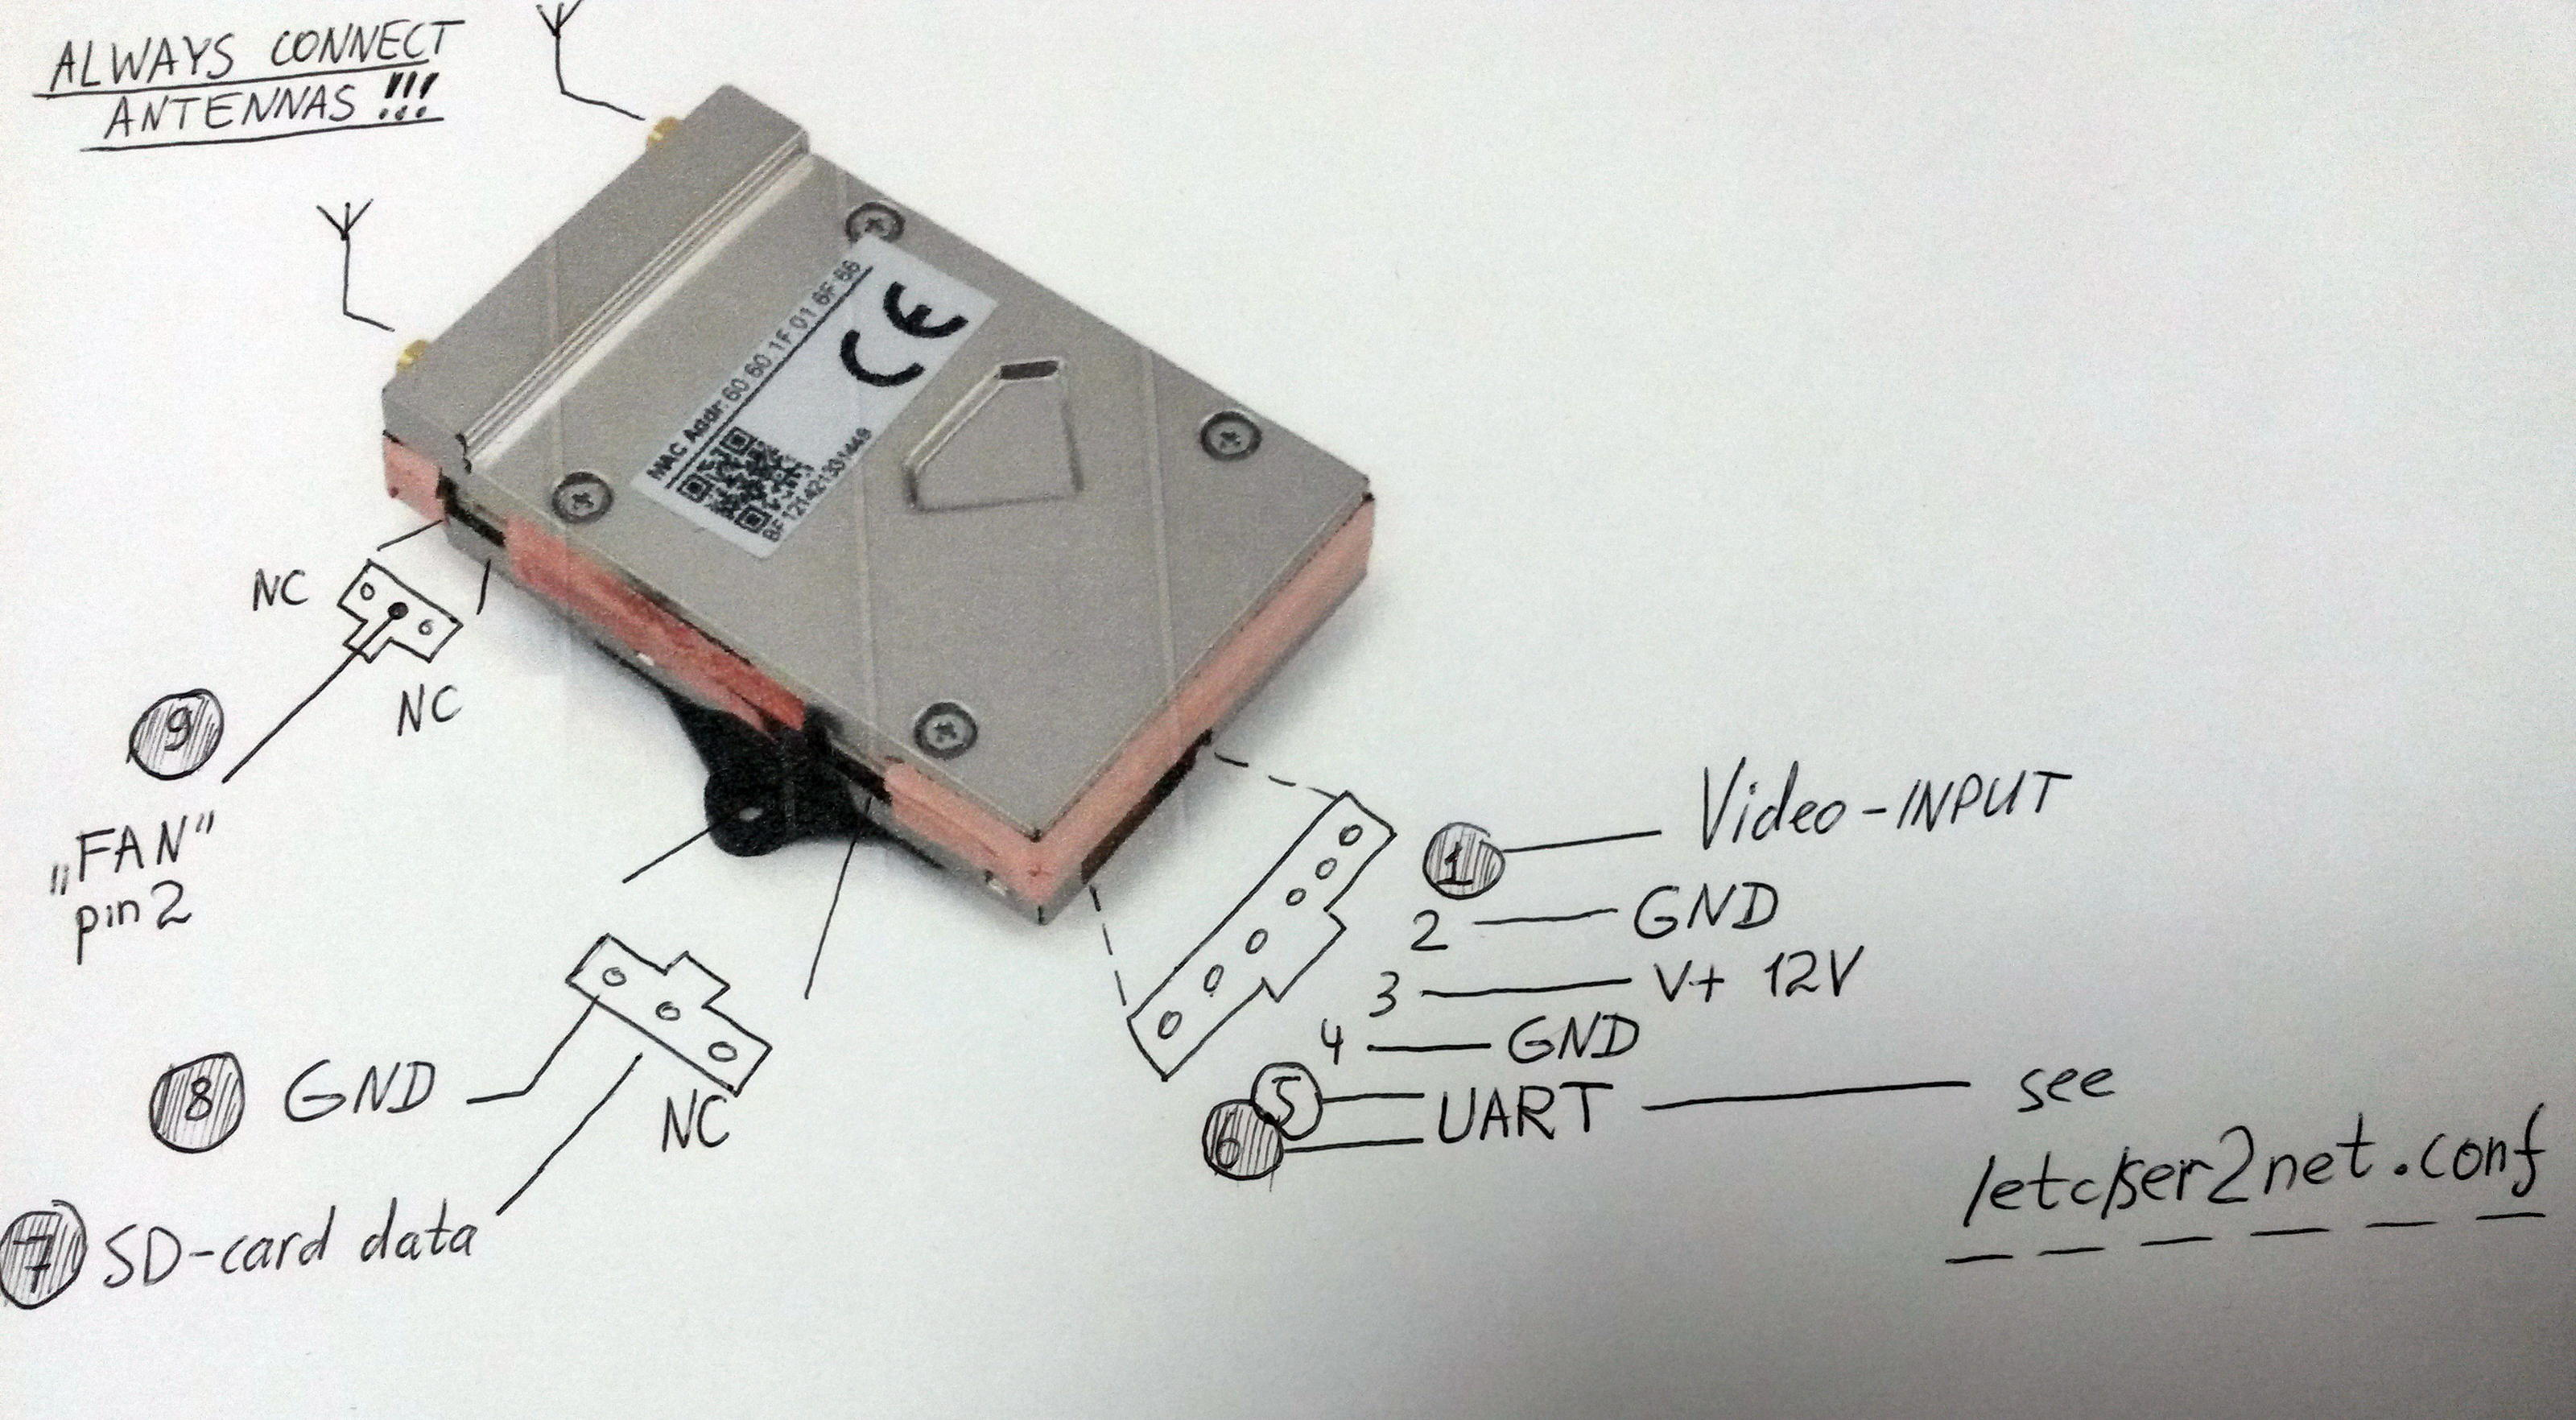 fpv transmitter wiring diagram ibanez rg vision+ stock with 3rd party camera..... working | dji forum